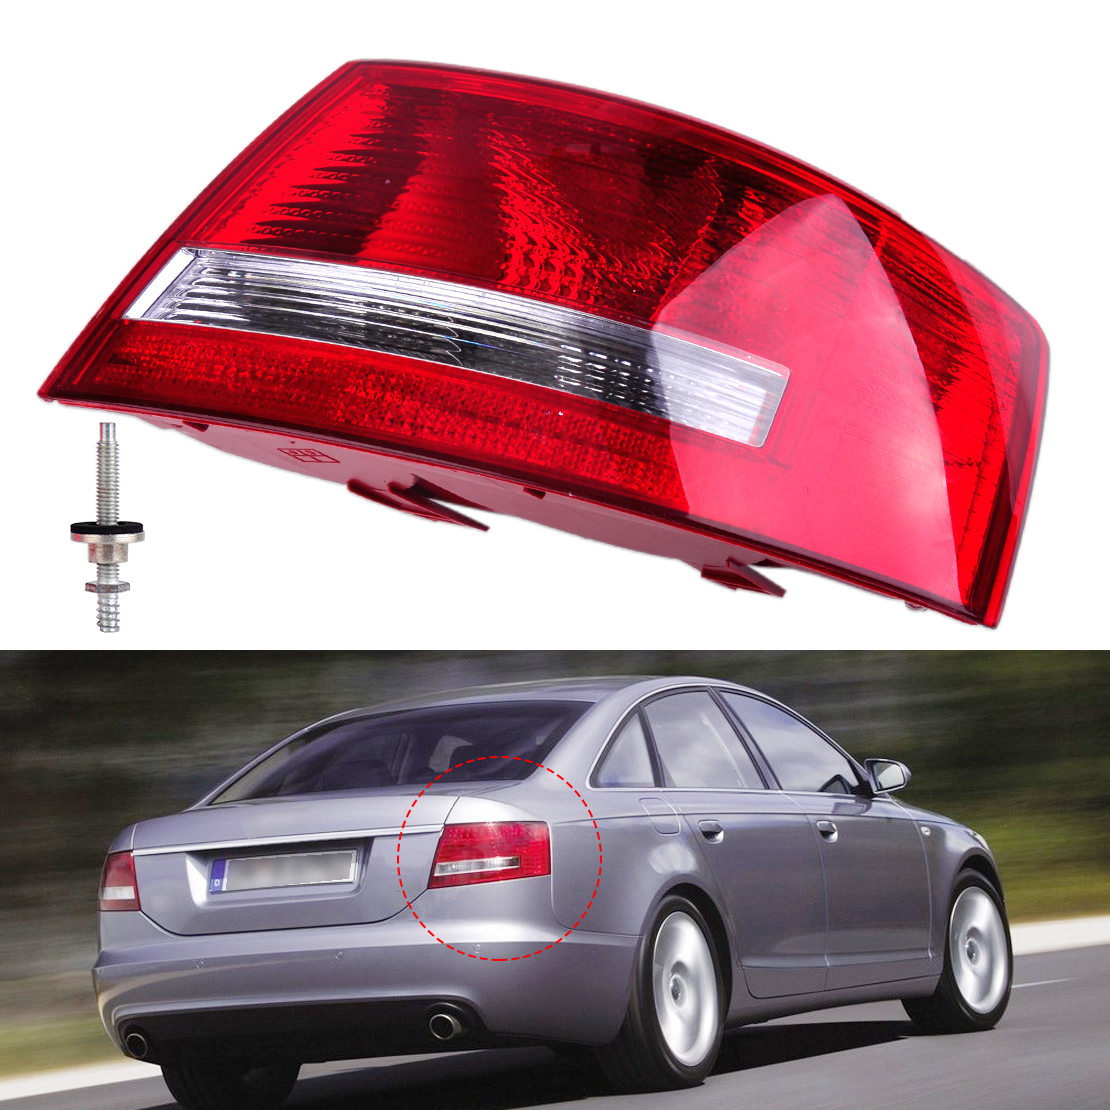 4F5 945 096 L 4F5 945 096 D Right Tail Light Assembly Lamp Housing without Bulb for Audi A6 A6 Quattro 2005 2006 2007 2008 Sedan free shipping for skoda octavia sedan a5 2005 2006 2007 2008 right side rear lamp tail light